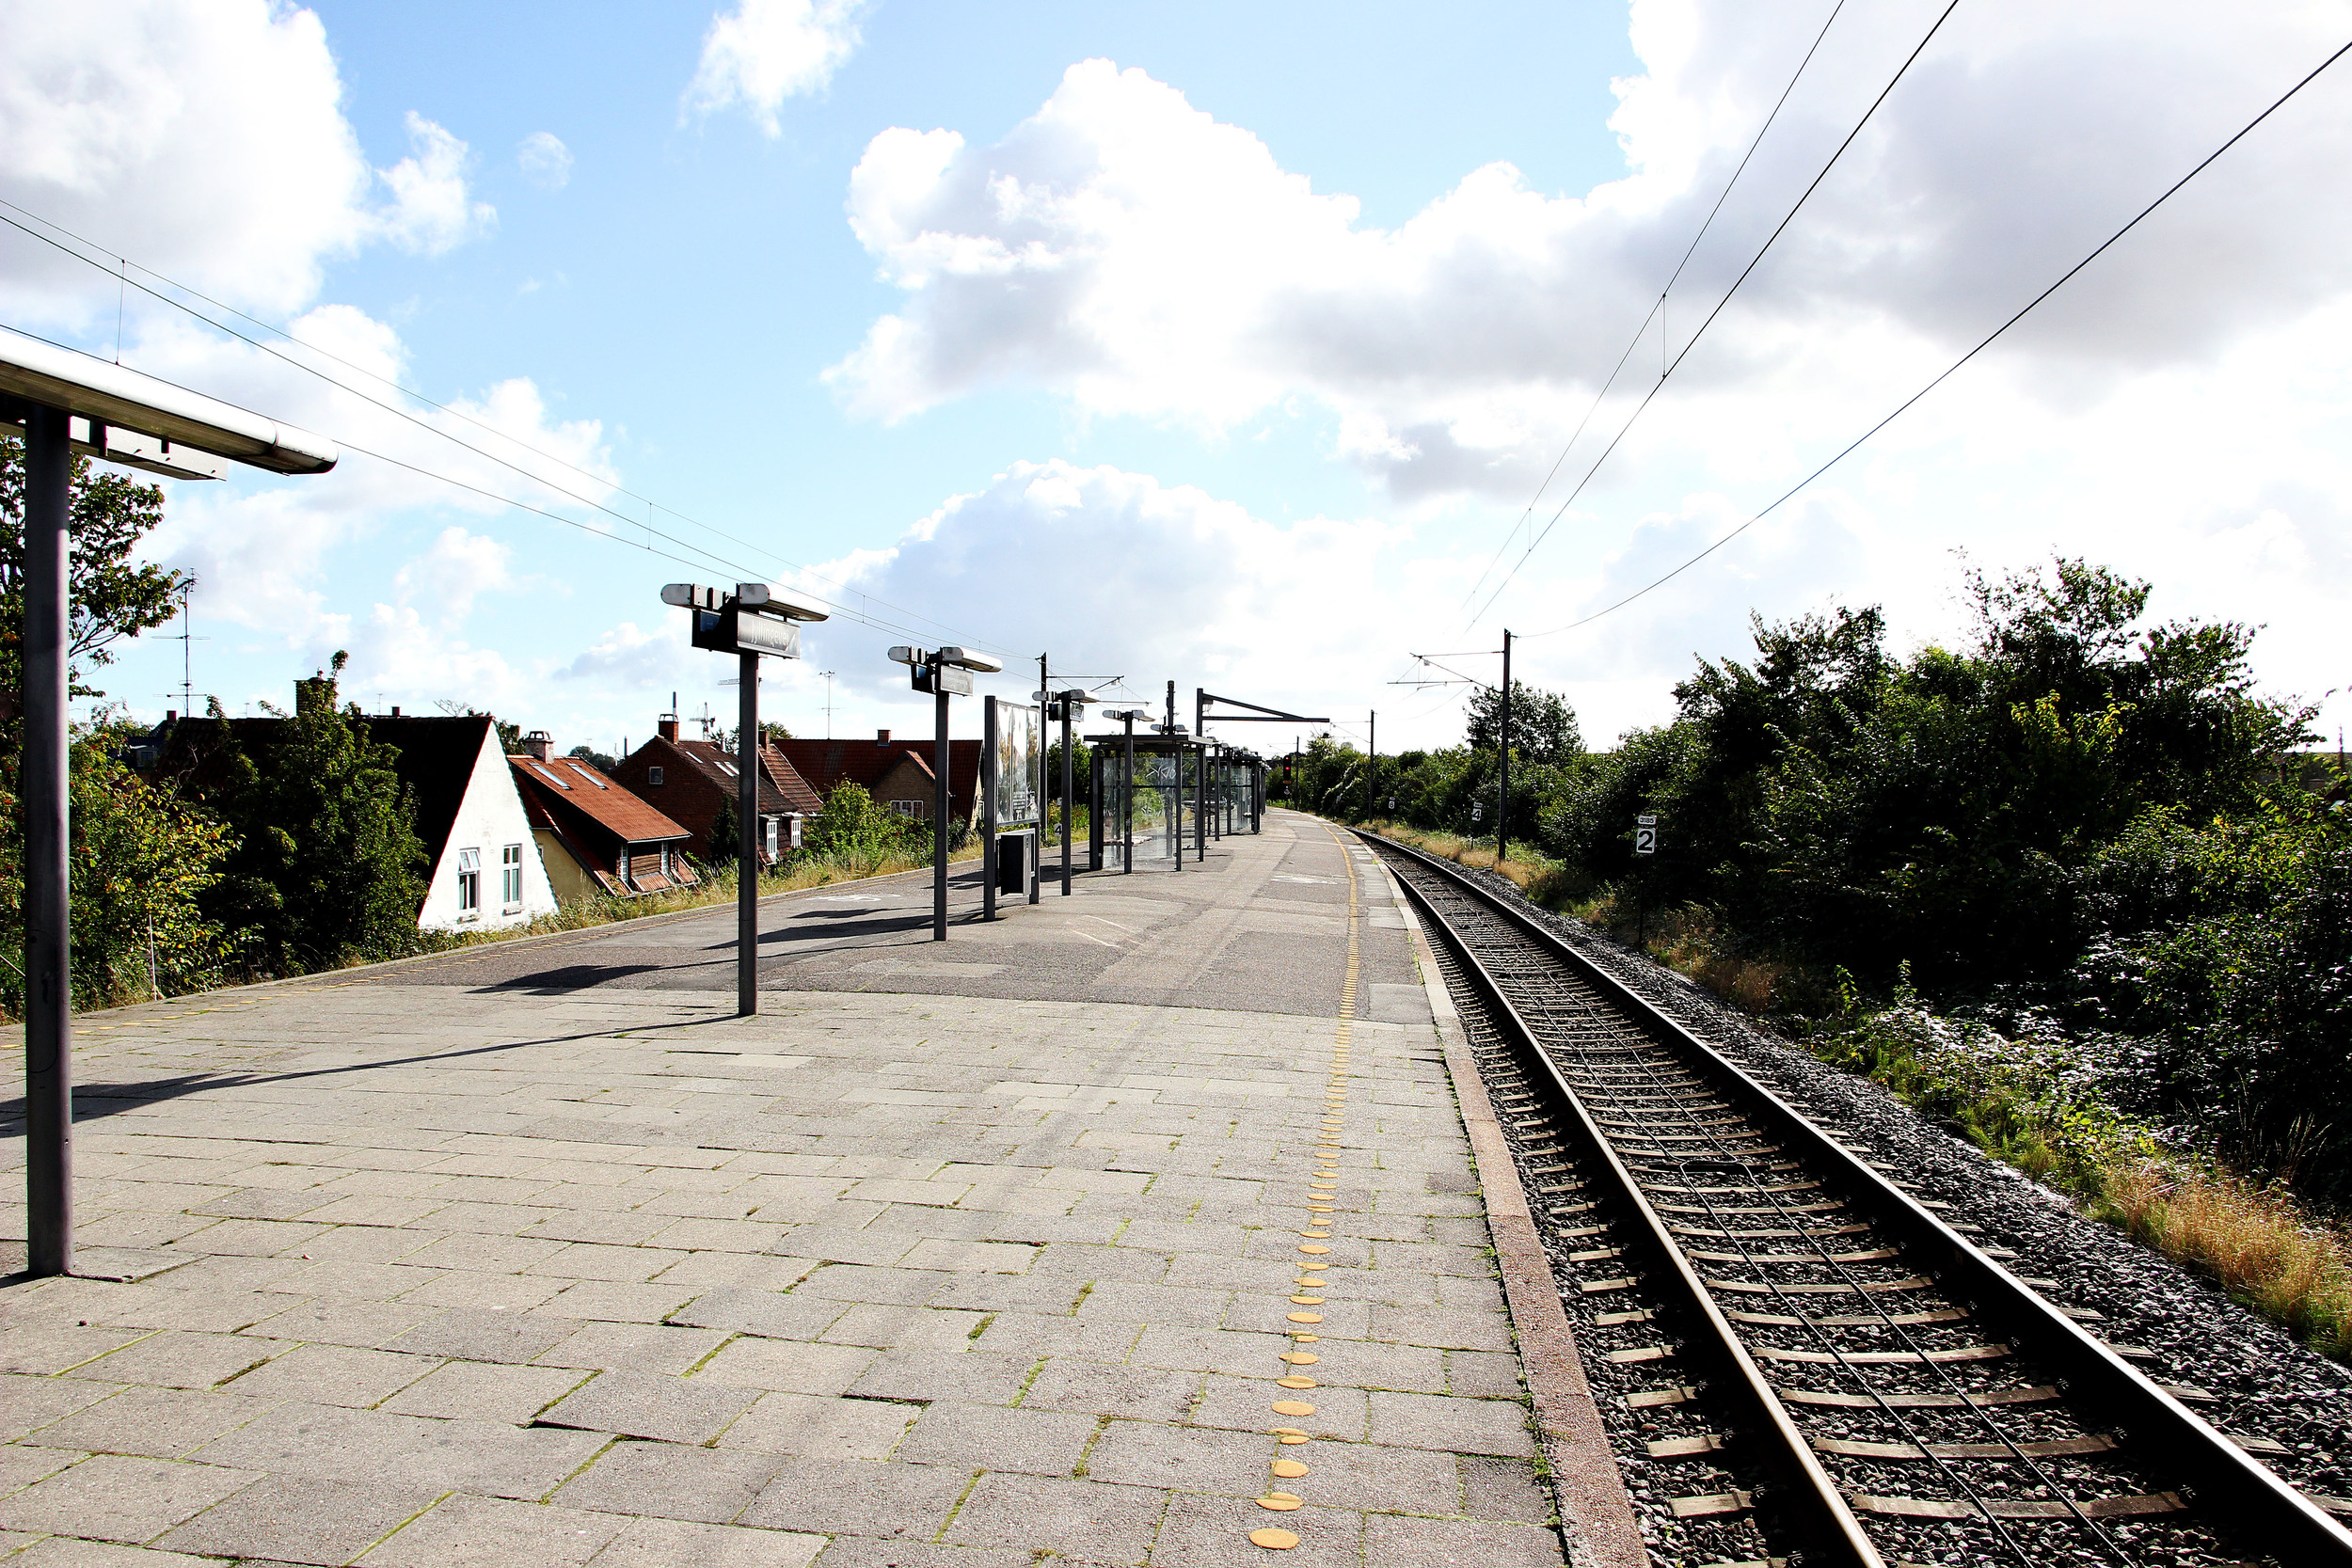 Our shady train station.